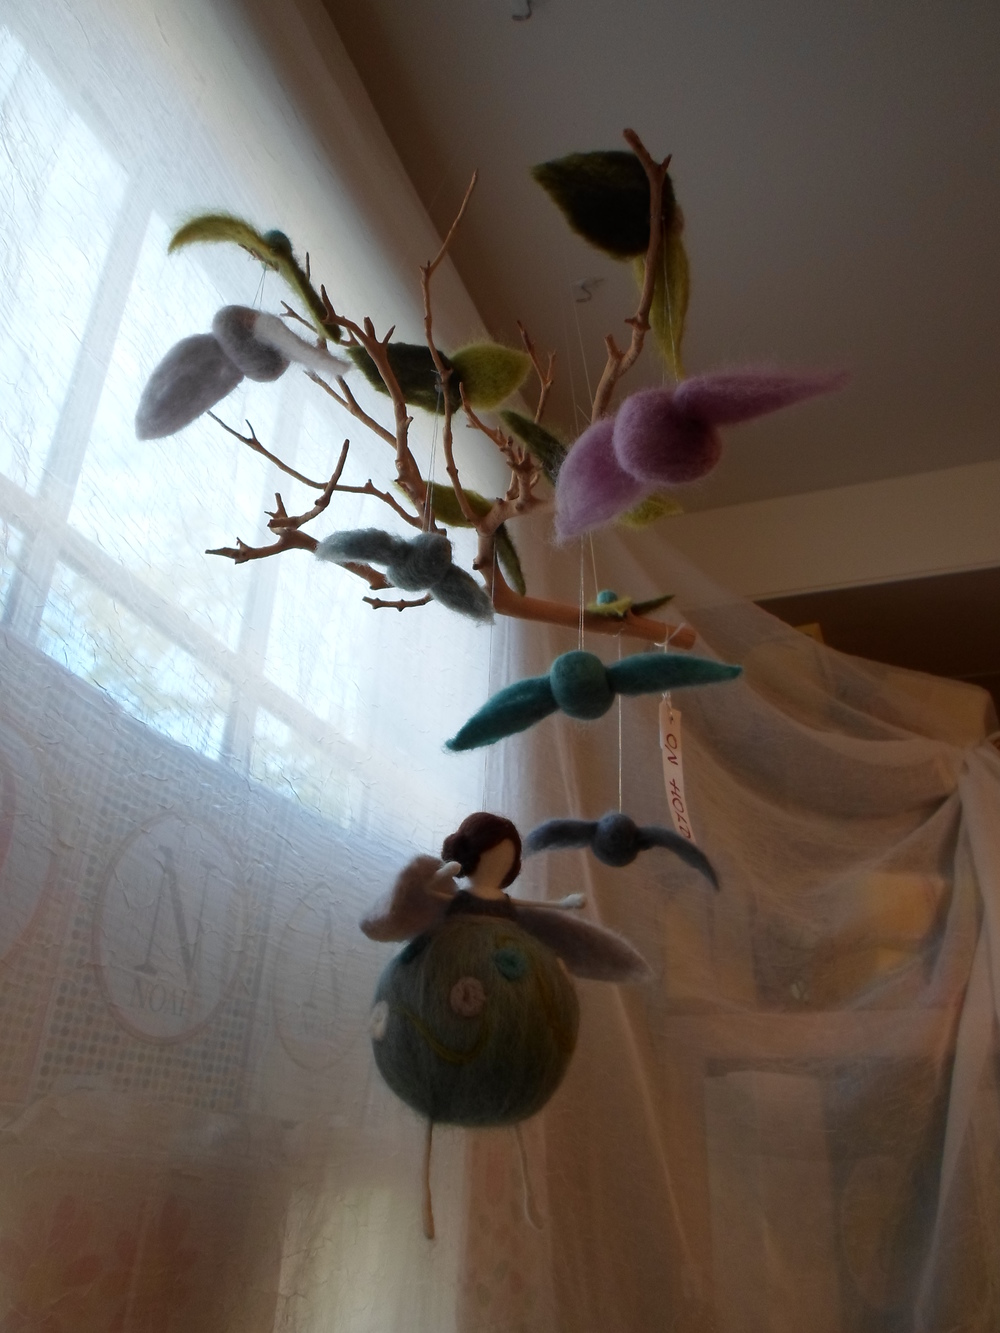 Wool Felted Fairy and Bird Mobile    Locally Handmade & one of a kind   $85.00    Wants 1 PURCHASED